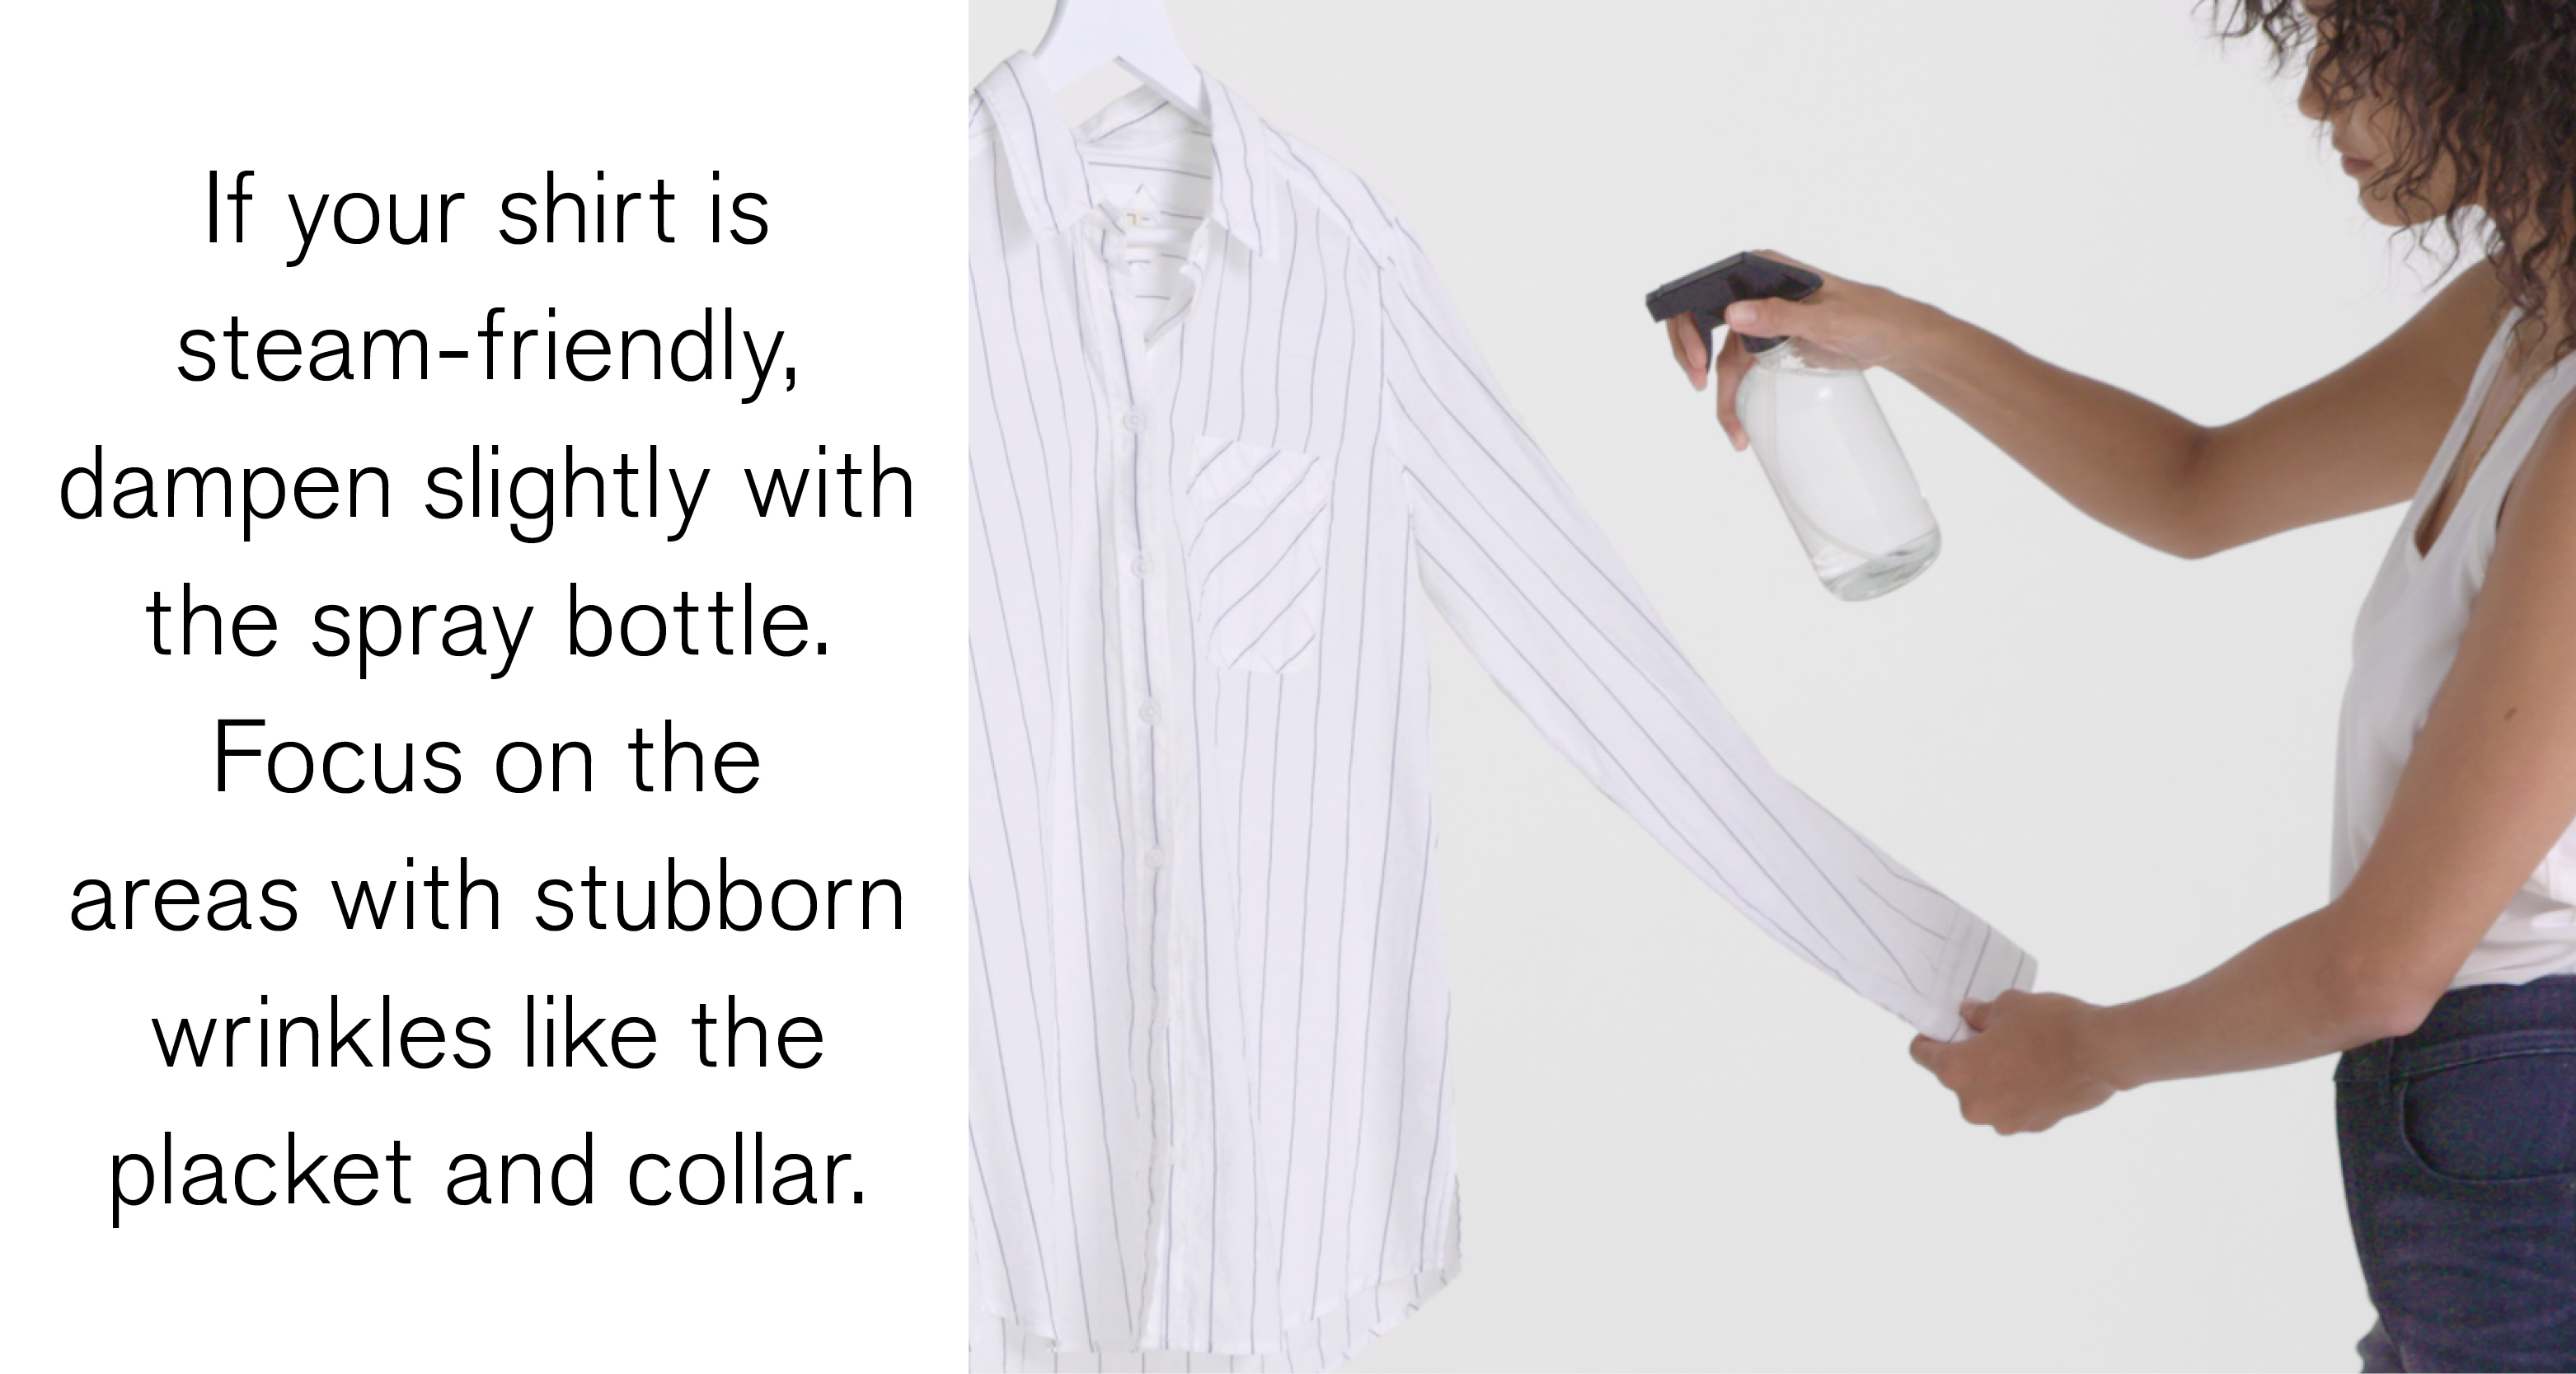 if-your-shirt-is-steam-friendly-dampen-slightly-with-the-spray-bottle-focus-on-the-areas-with-stubborn-wrinkles-like-the-placket-and-collar